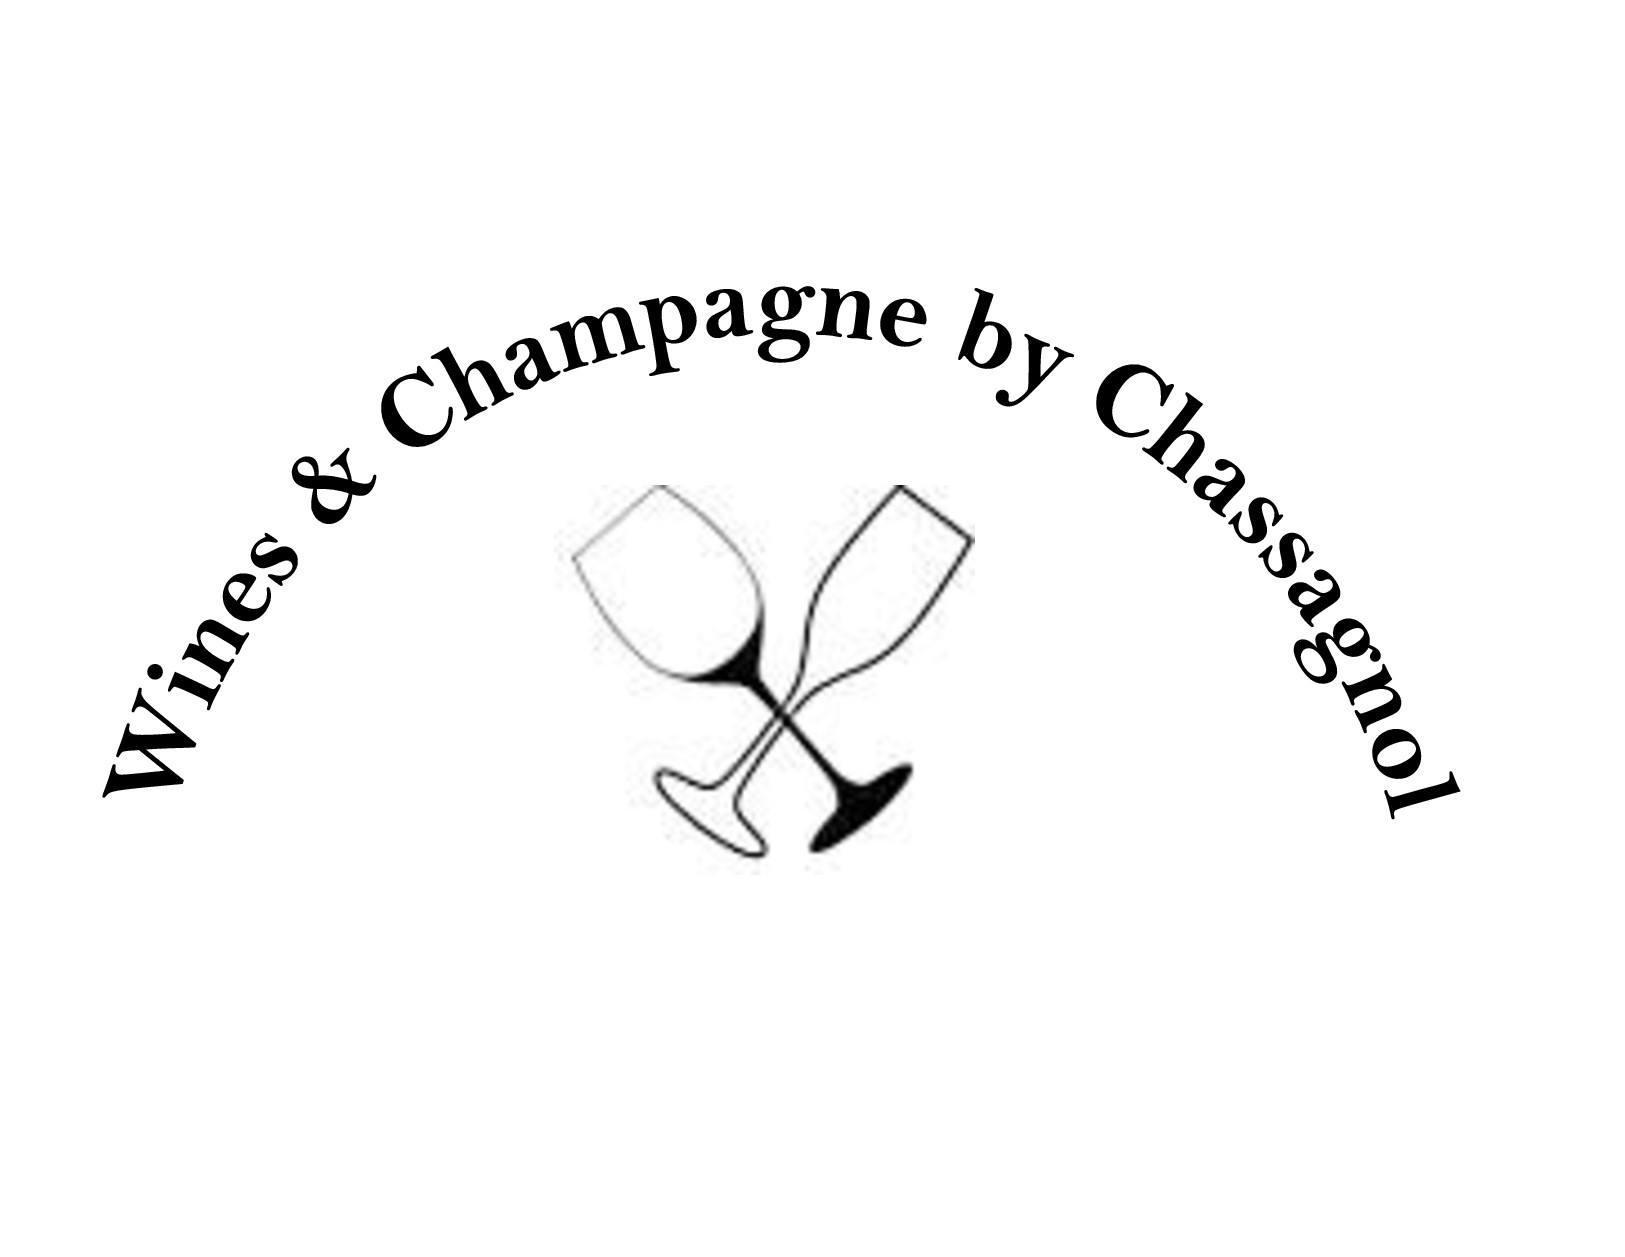 Wines & Champagne by Chassagnol